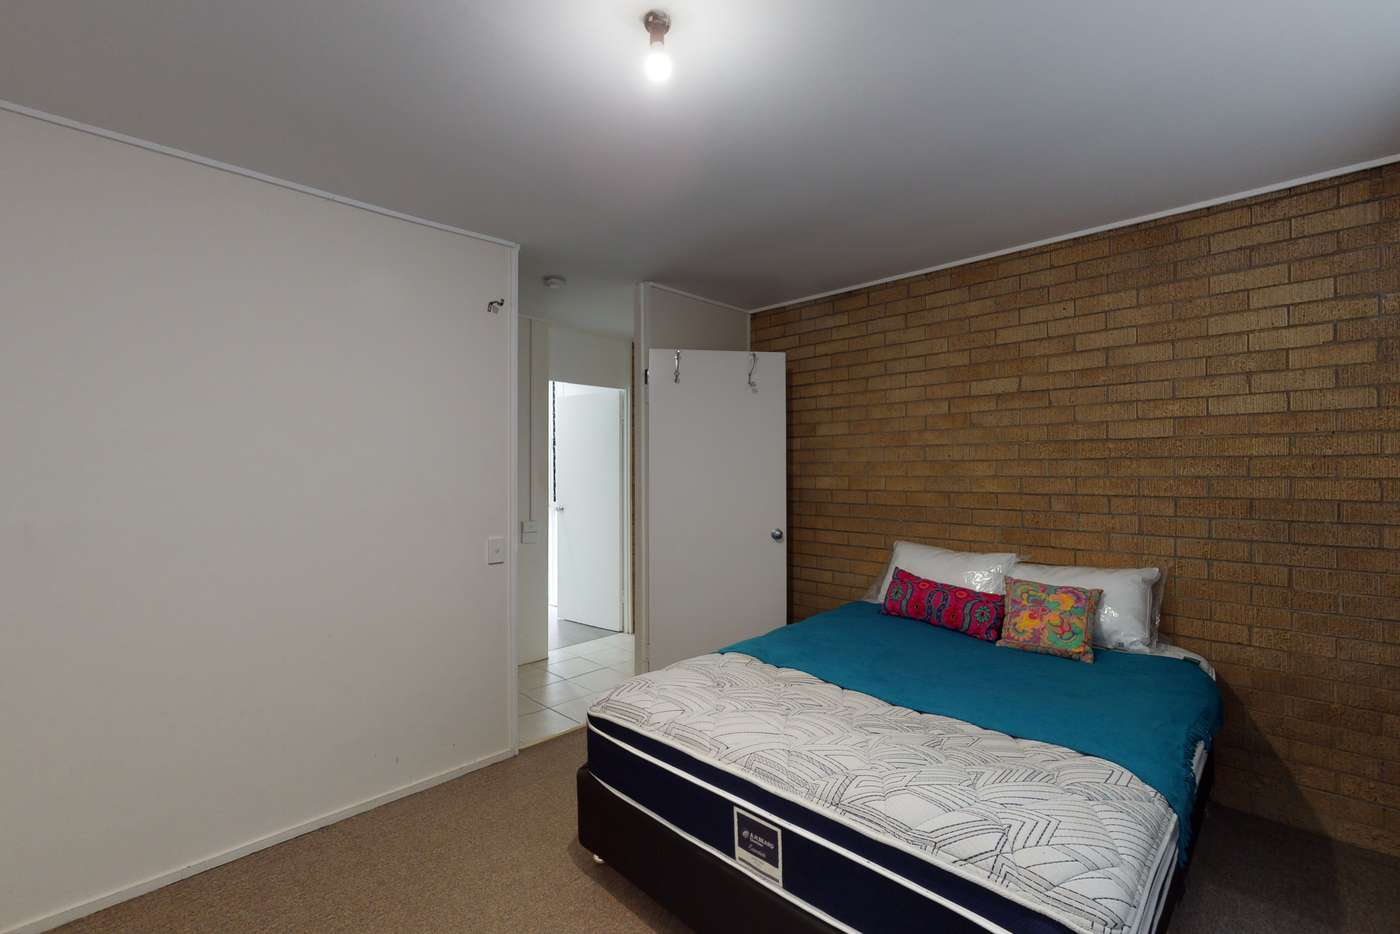 Fifth view of Homely unit listing, 12/59 Sandford Street, St Lucia QLD 4067